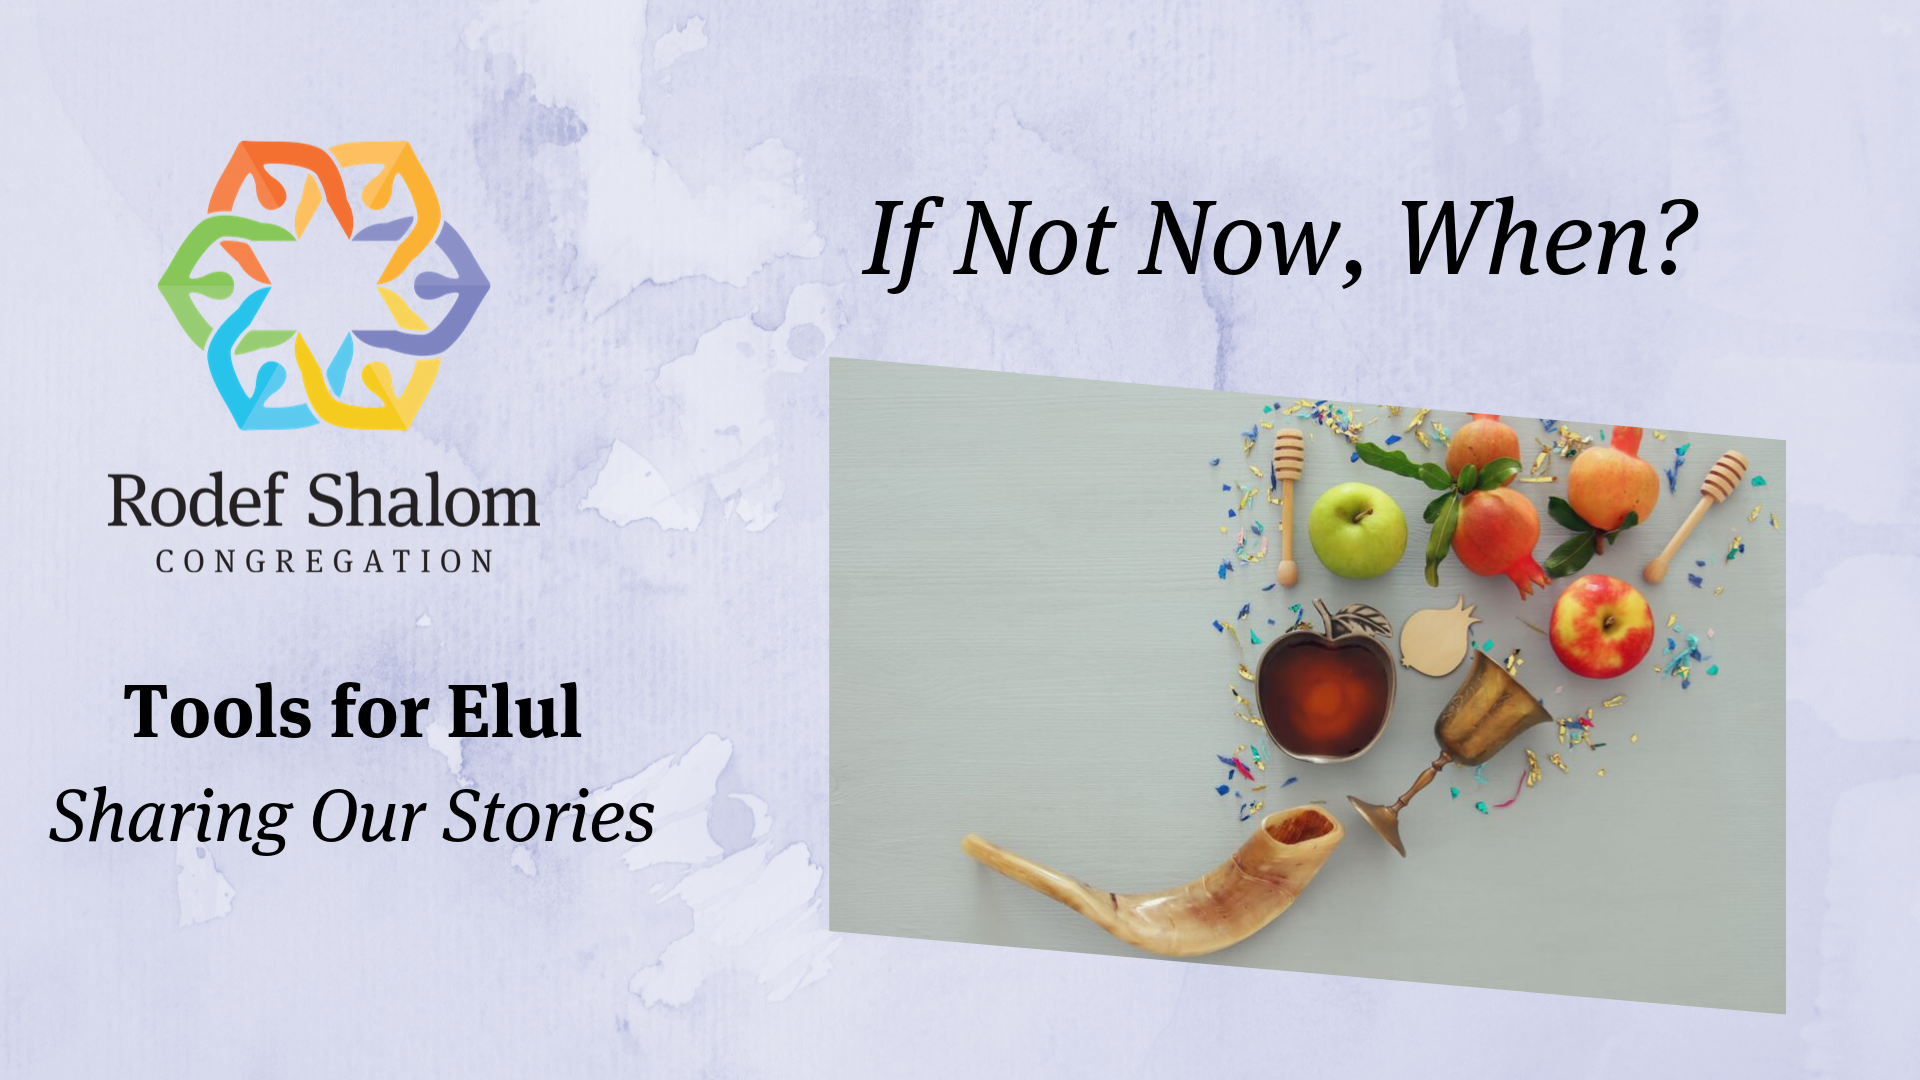 Tools for Elul Headers 8.27.19 (19).png